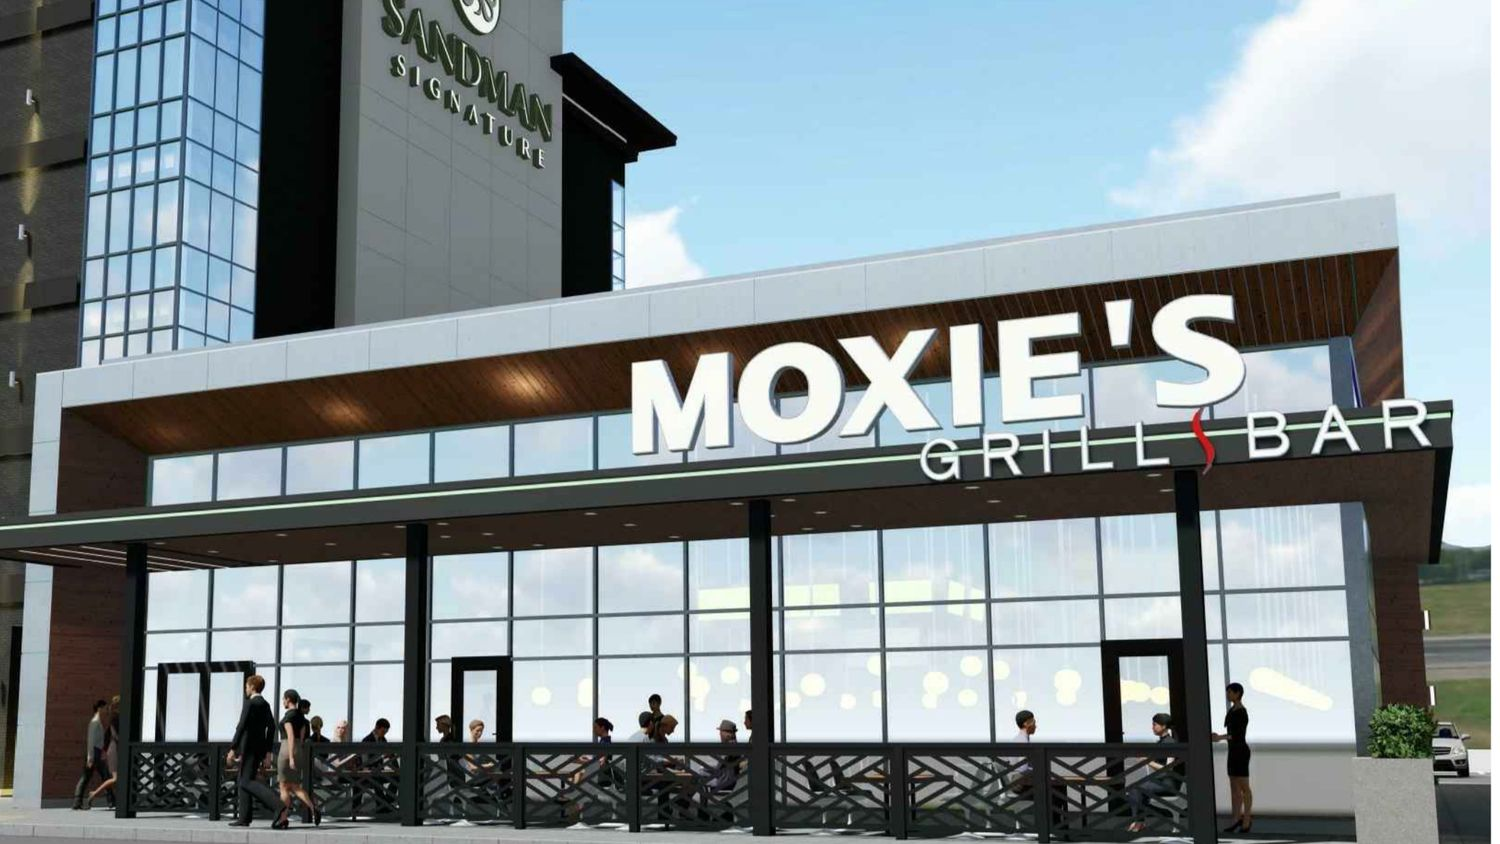 The Sandman Signature hotel will include a bar and grill on the ground floor.